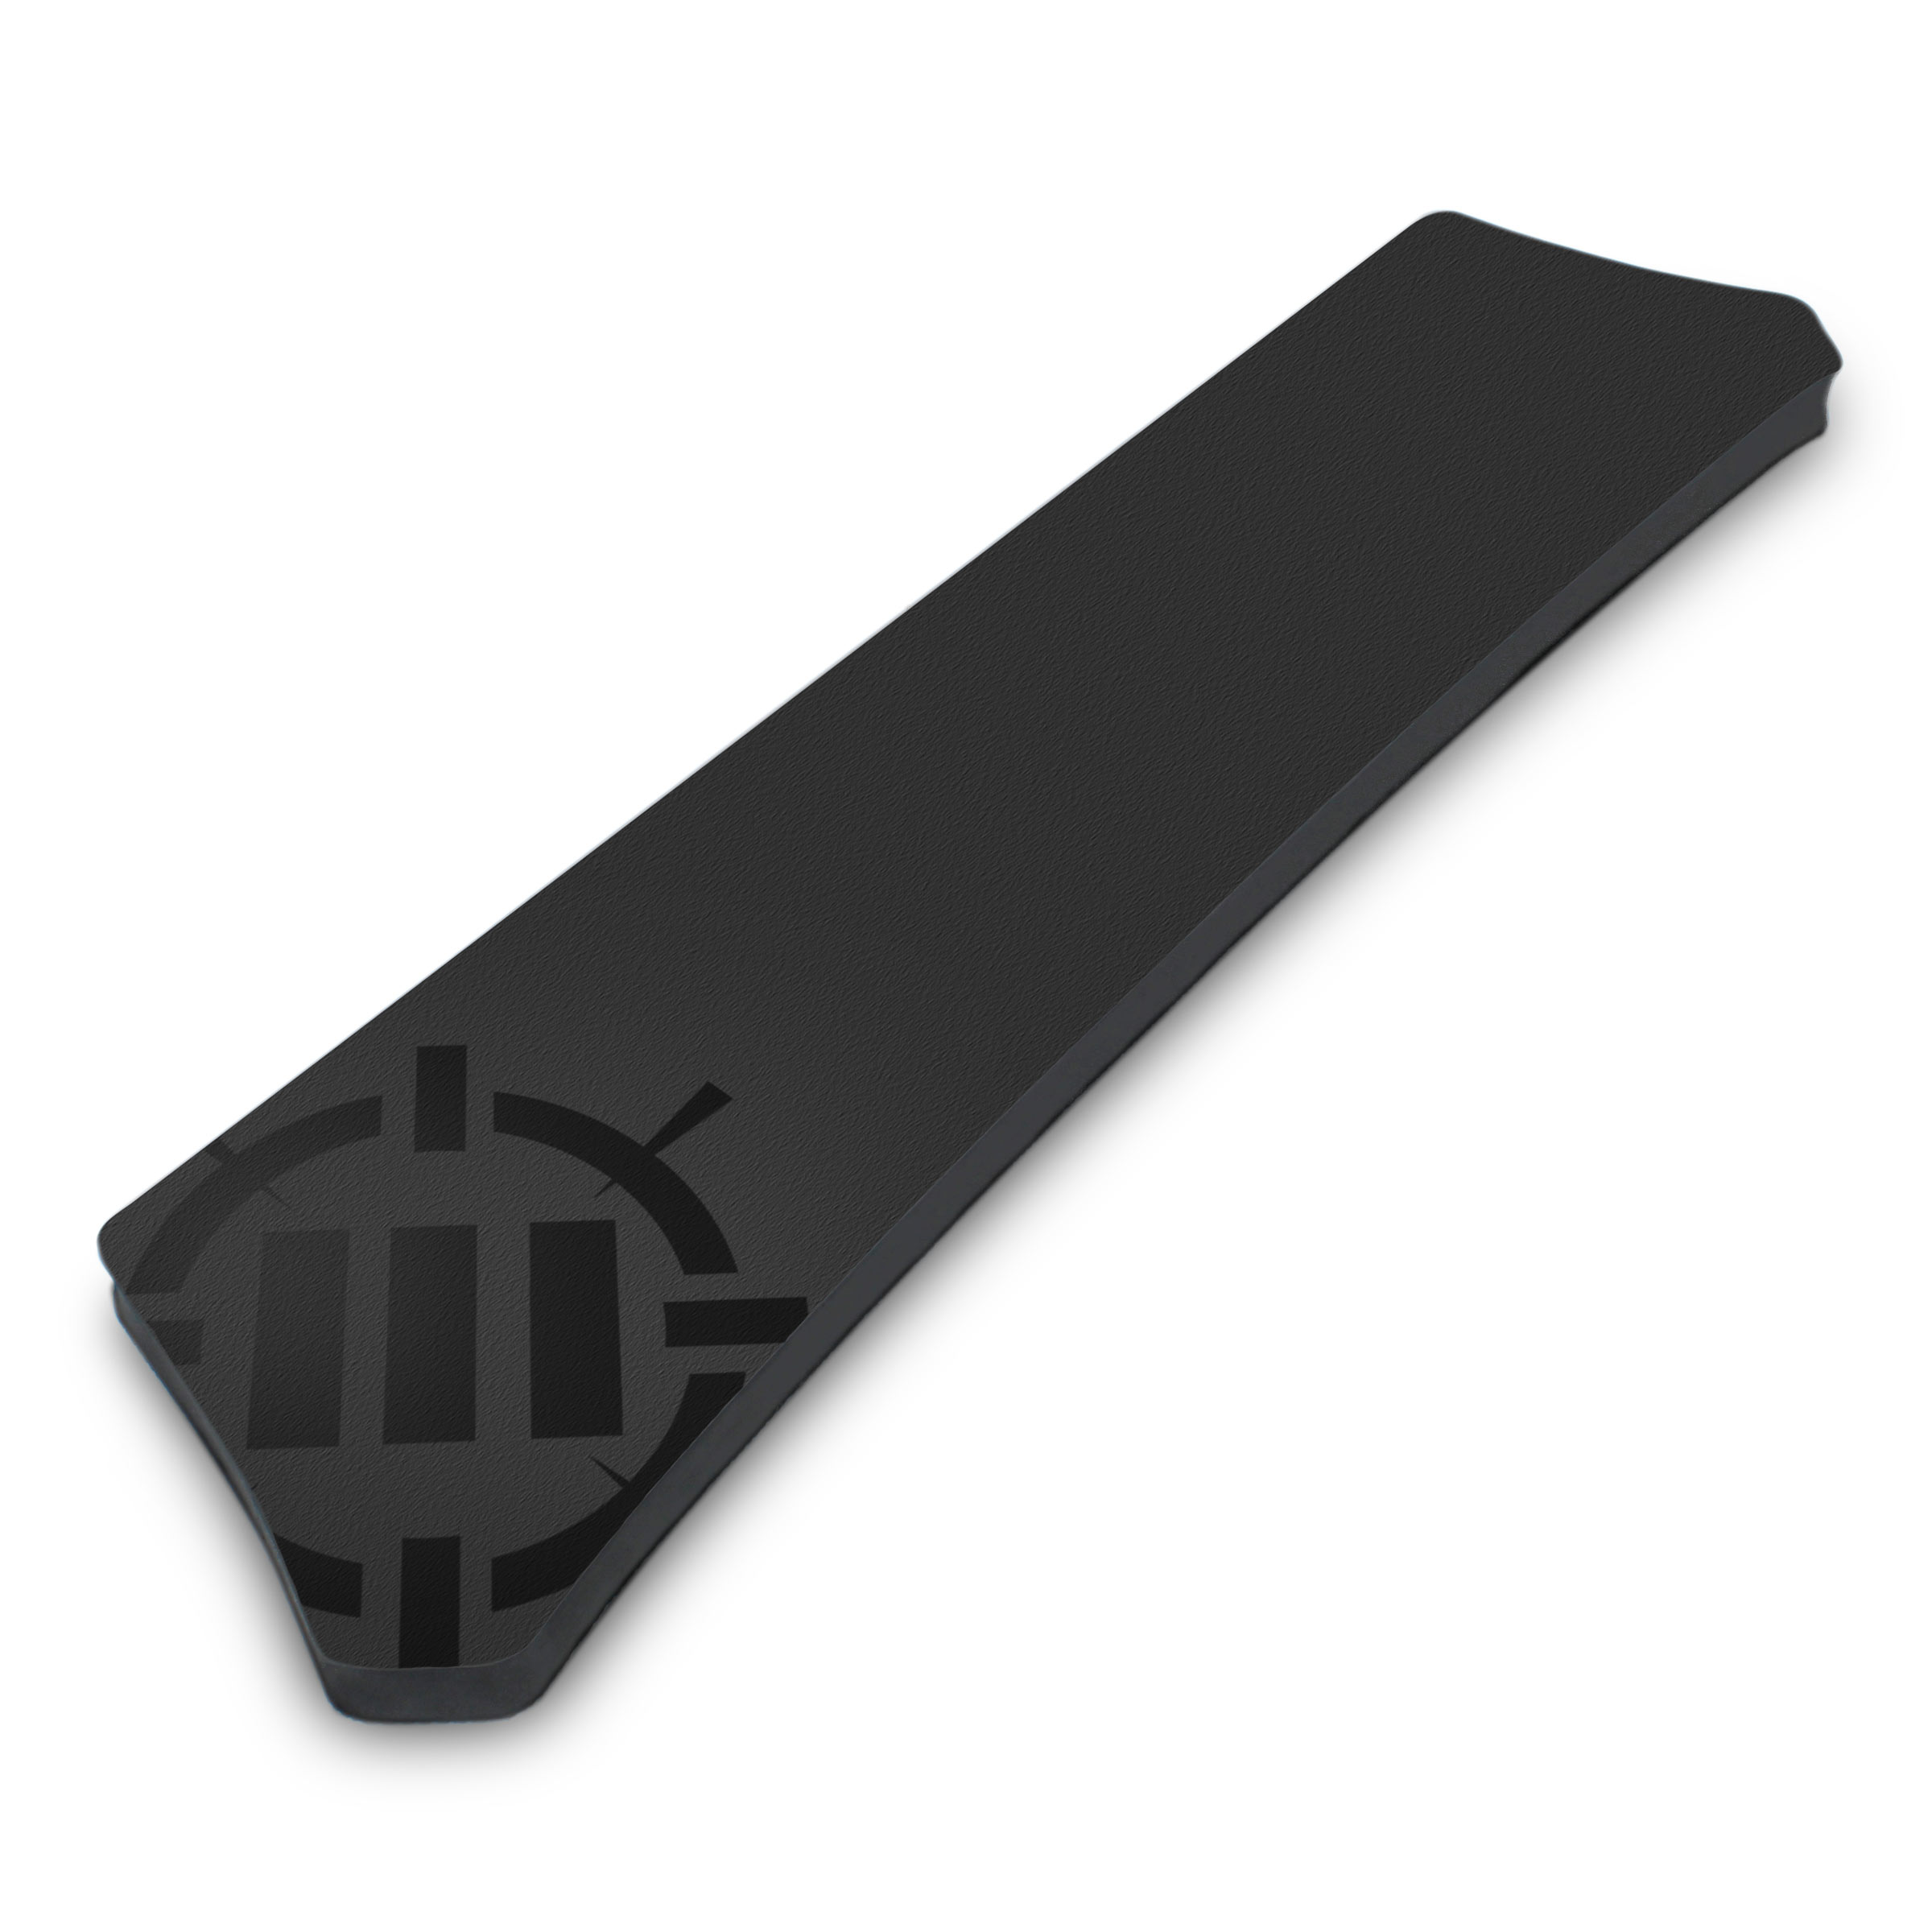 Mouse & Keyboards Cheap Sale Slope Leather Wrist Rest Pad Wrist Support Cushion For Keyboard Price Remains Stable